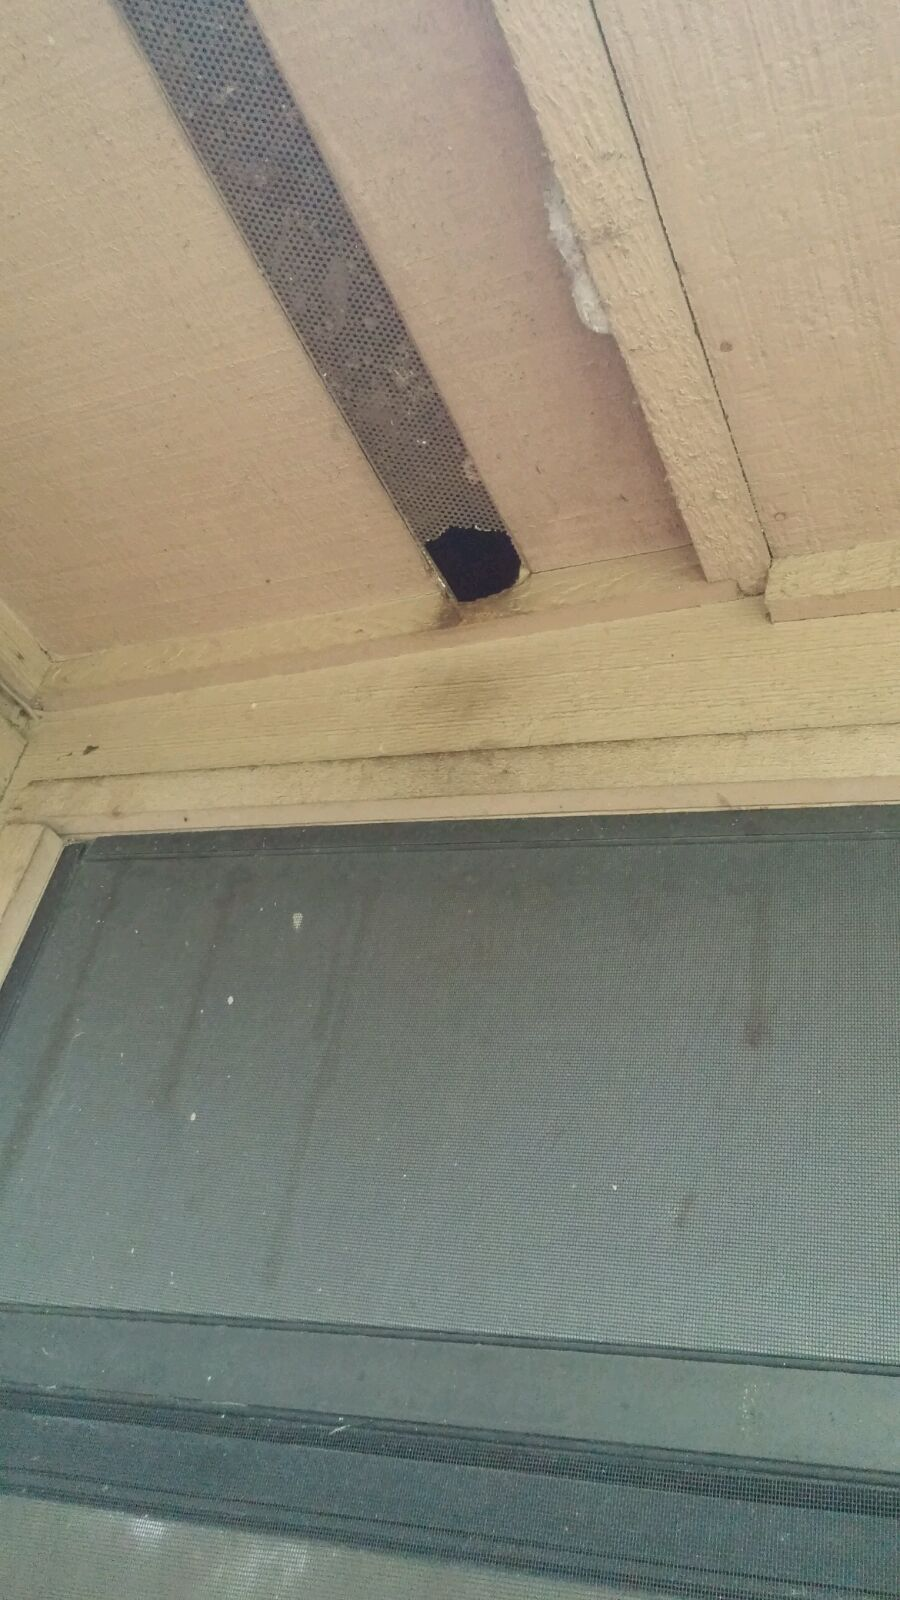 Rat entry at a house in Ocala